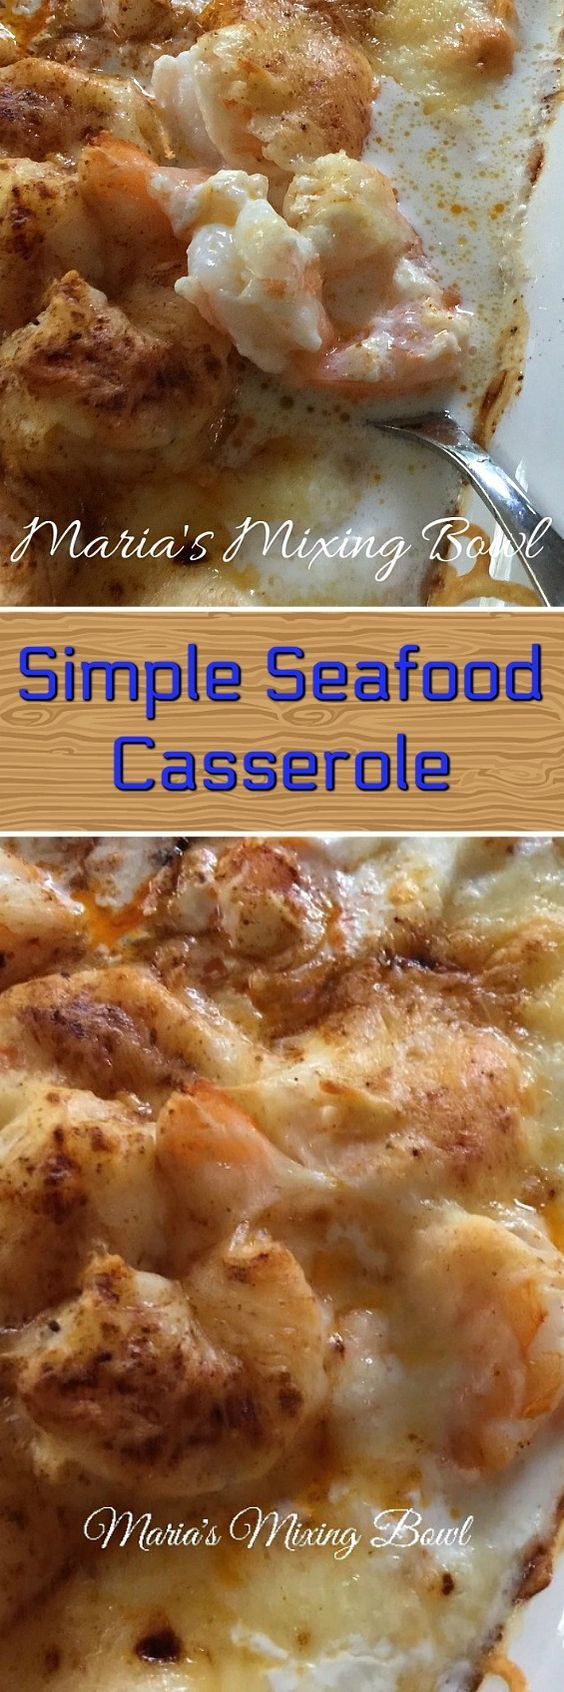 The simplest yest our favorite seafood casserole. The garlic and cream bring this all together in a delicious brothy sauce. I just love this casserole recipe. I got the recipe from a localrestaurant that we go to quite often. It is simple and easy yet full of flavor. So when I begged the chef forView Post